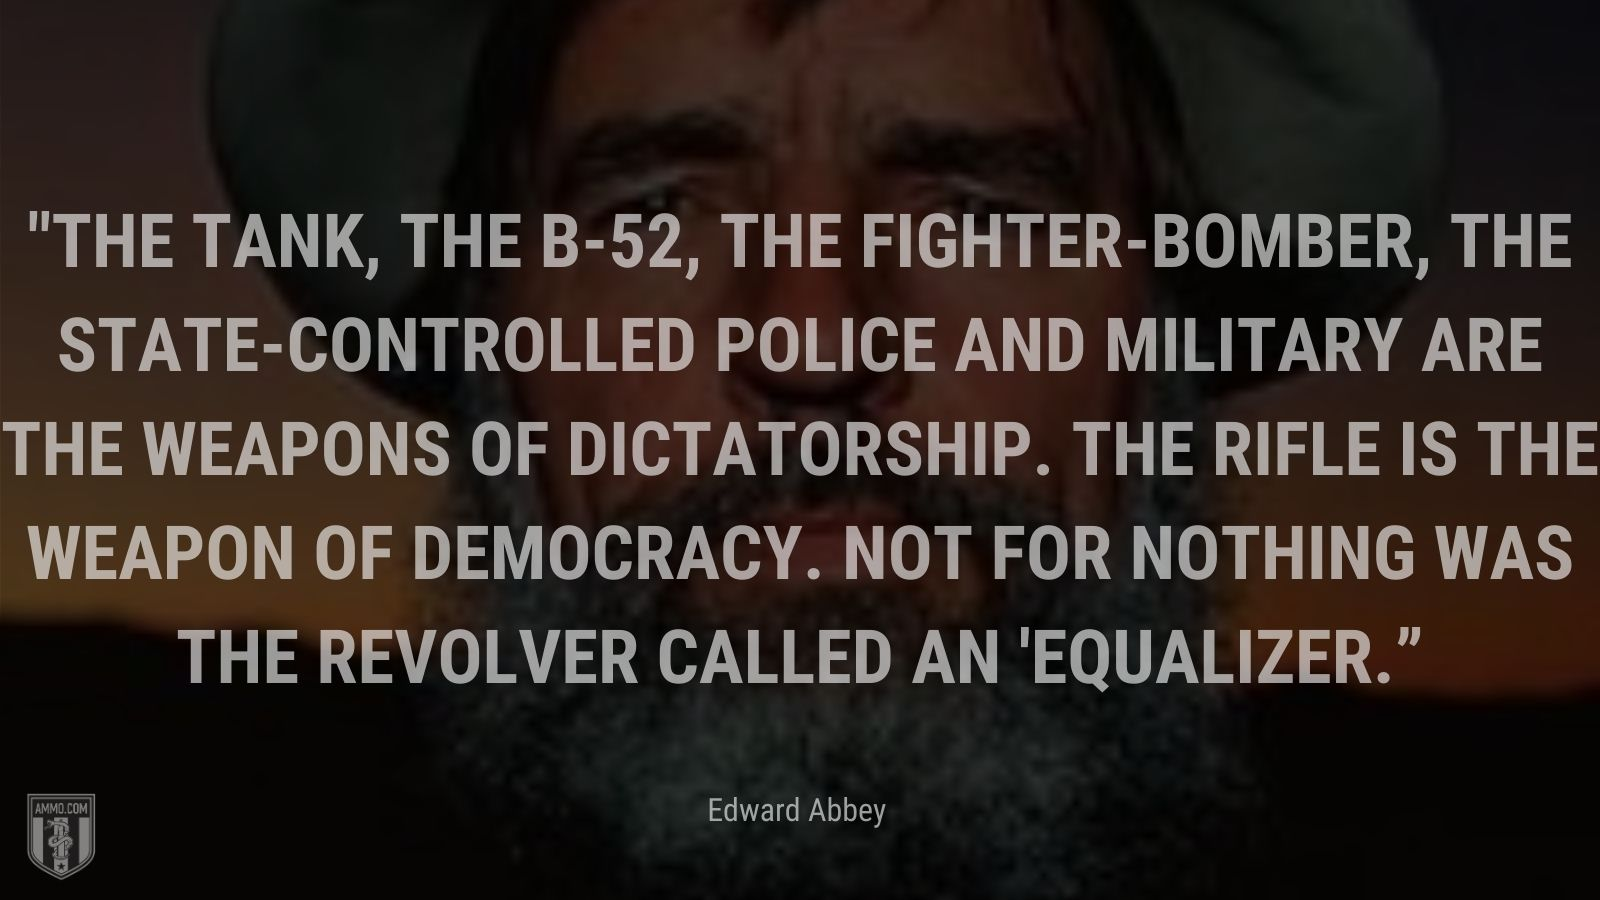 """""""The tank, the B-52, the fighter-bomber, the state-controlled police and military are the weapons of dictatorship. The rifle is the weapon of democracy. Not for nothing was the revolver called an 'equalizer.'"""" - Edward Abbey"""